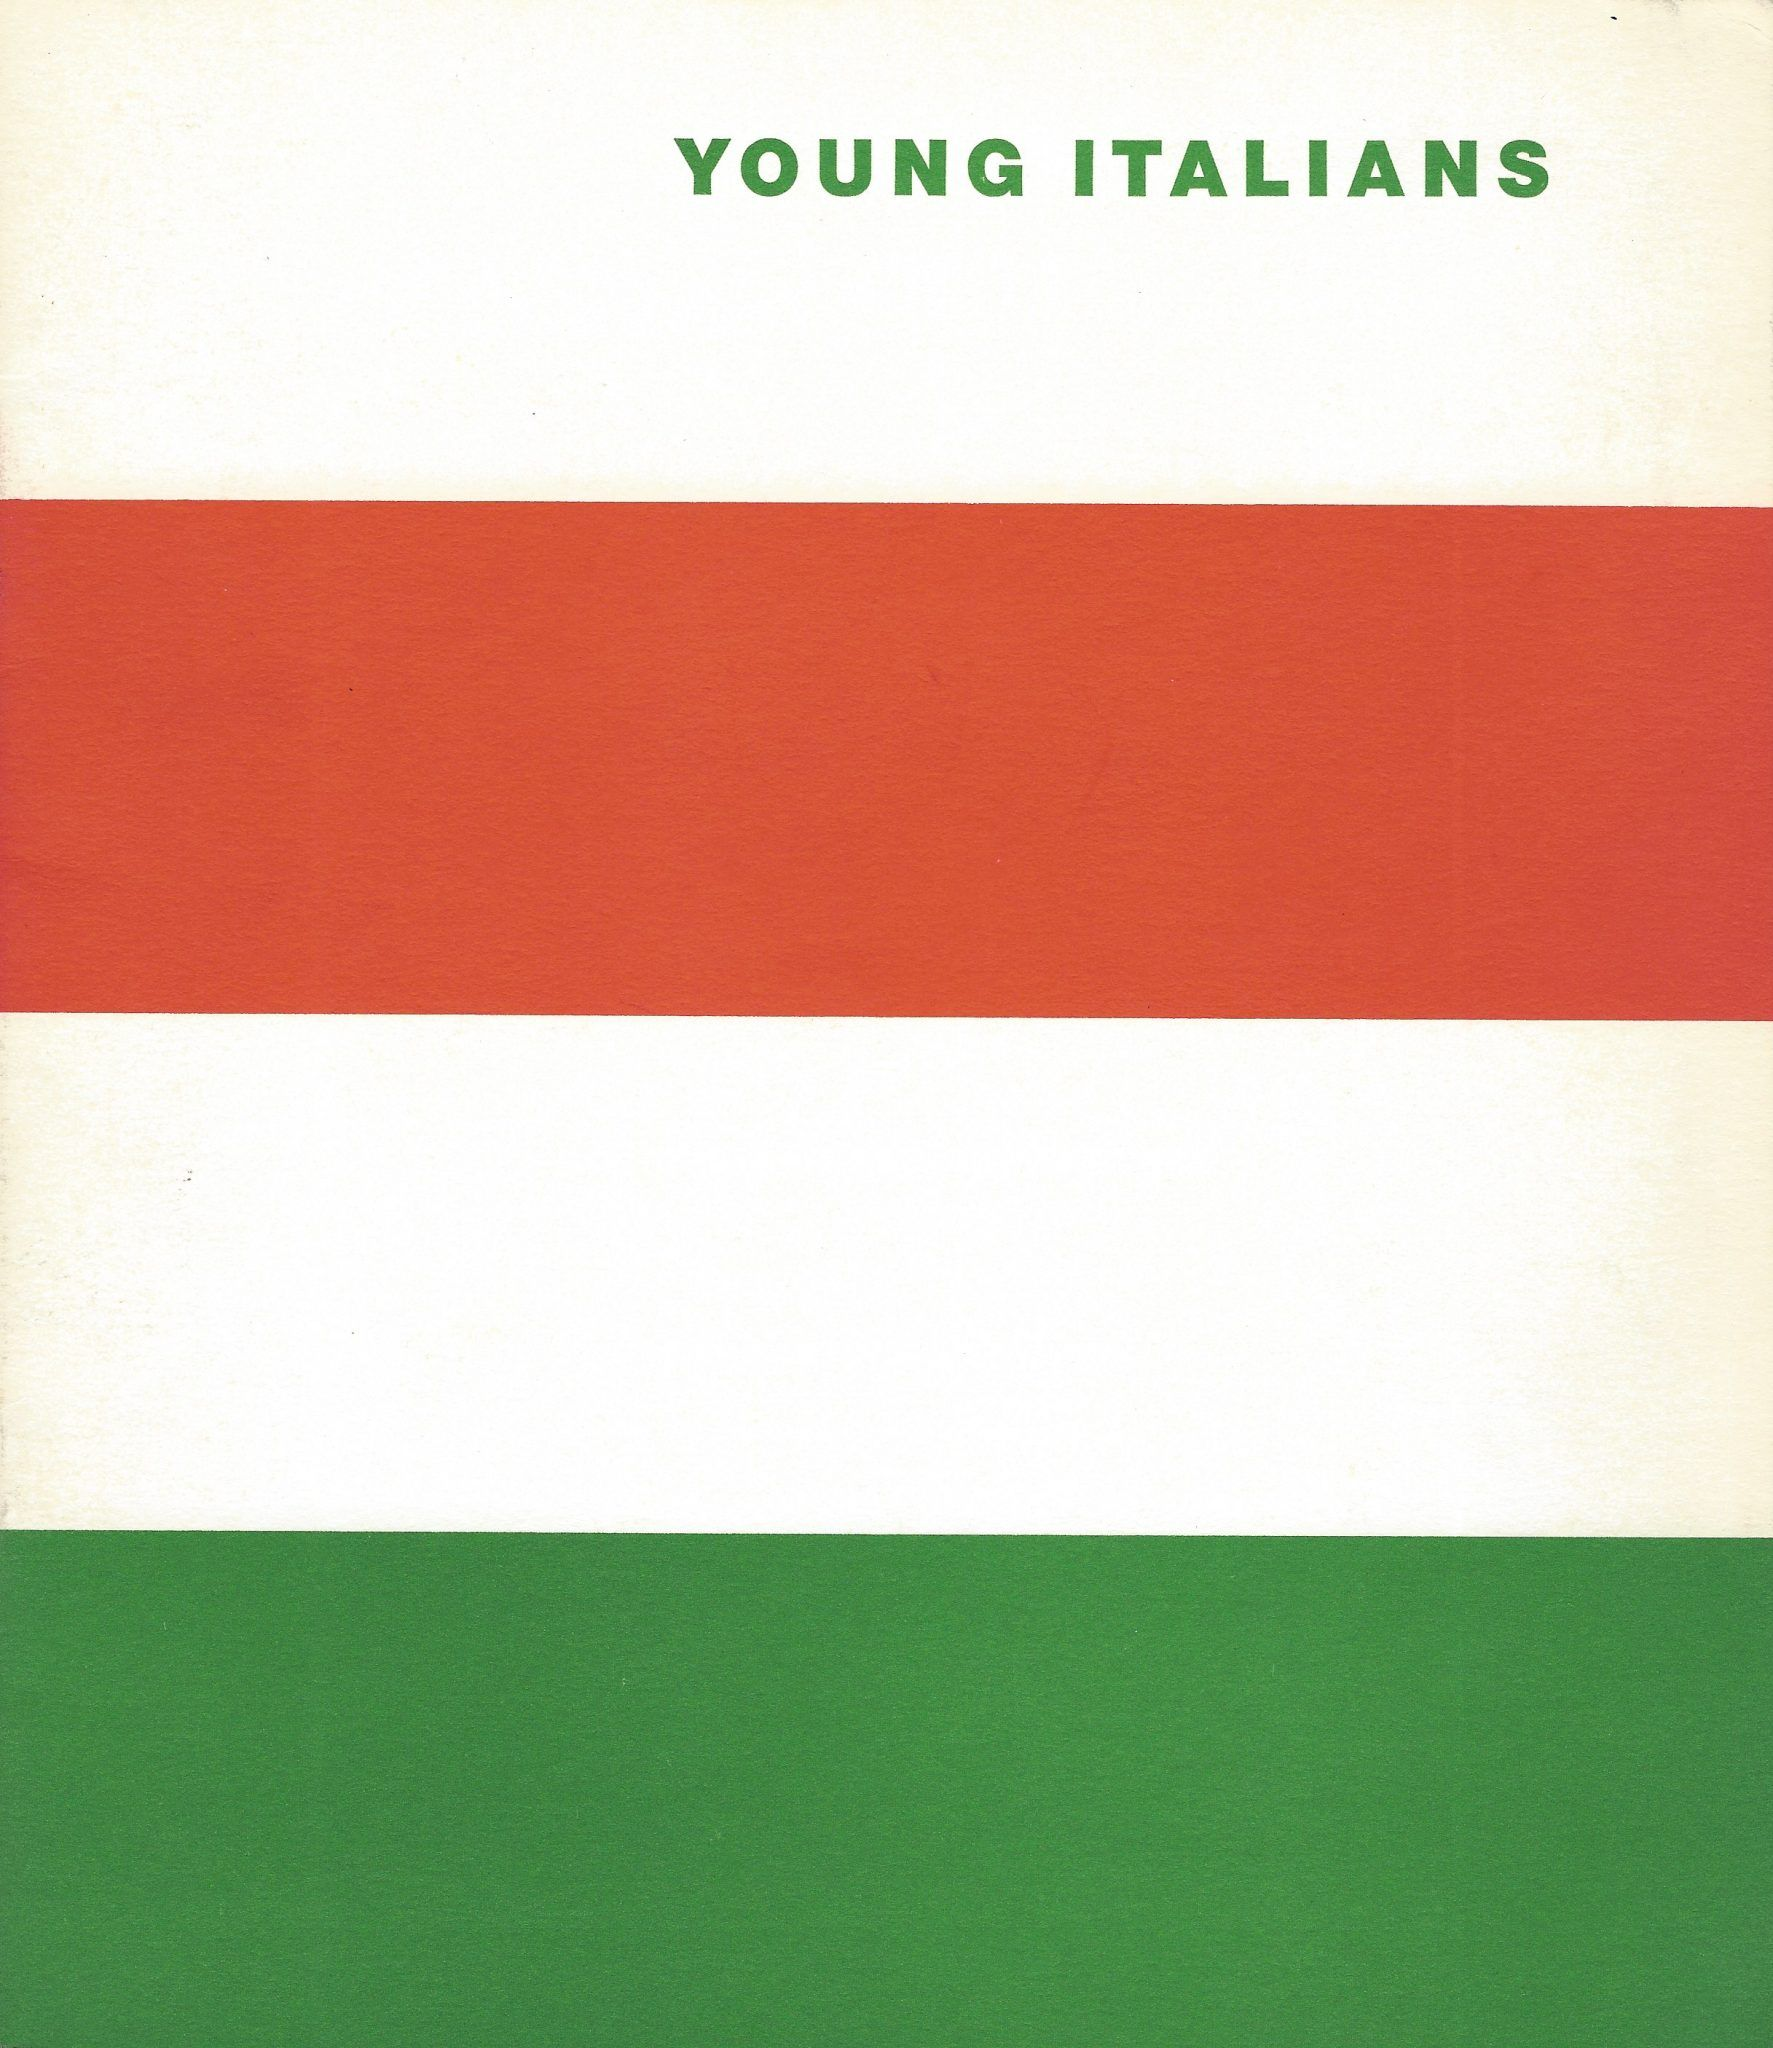 young italians